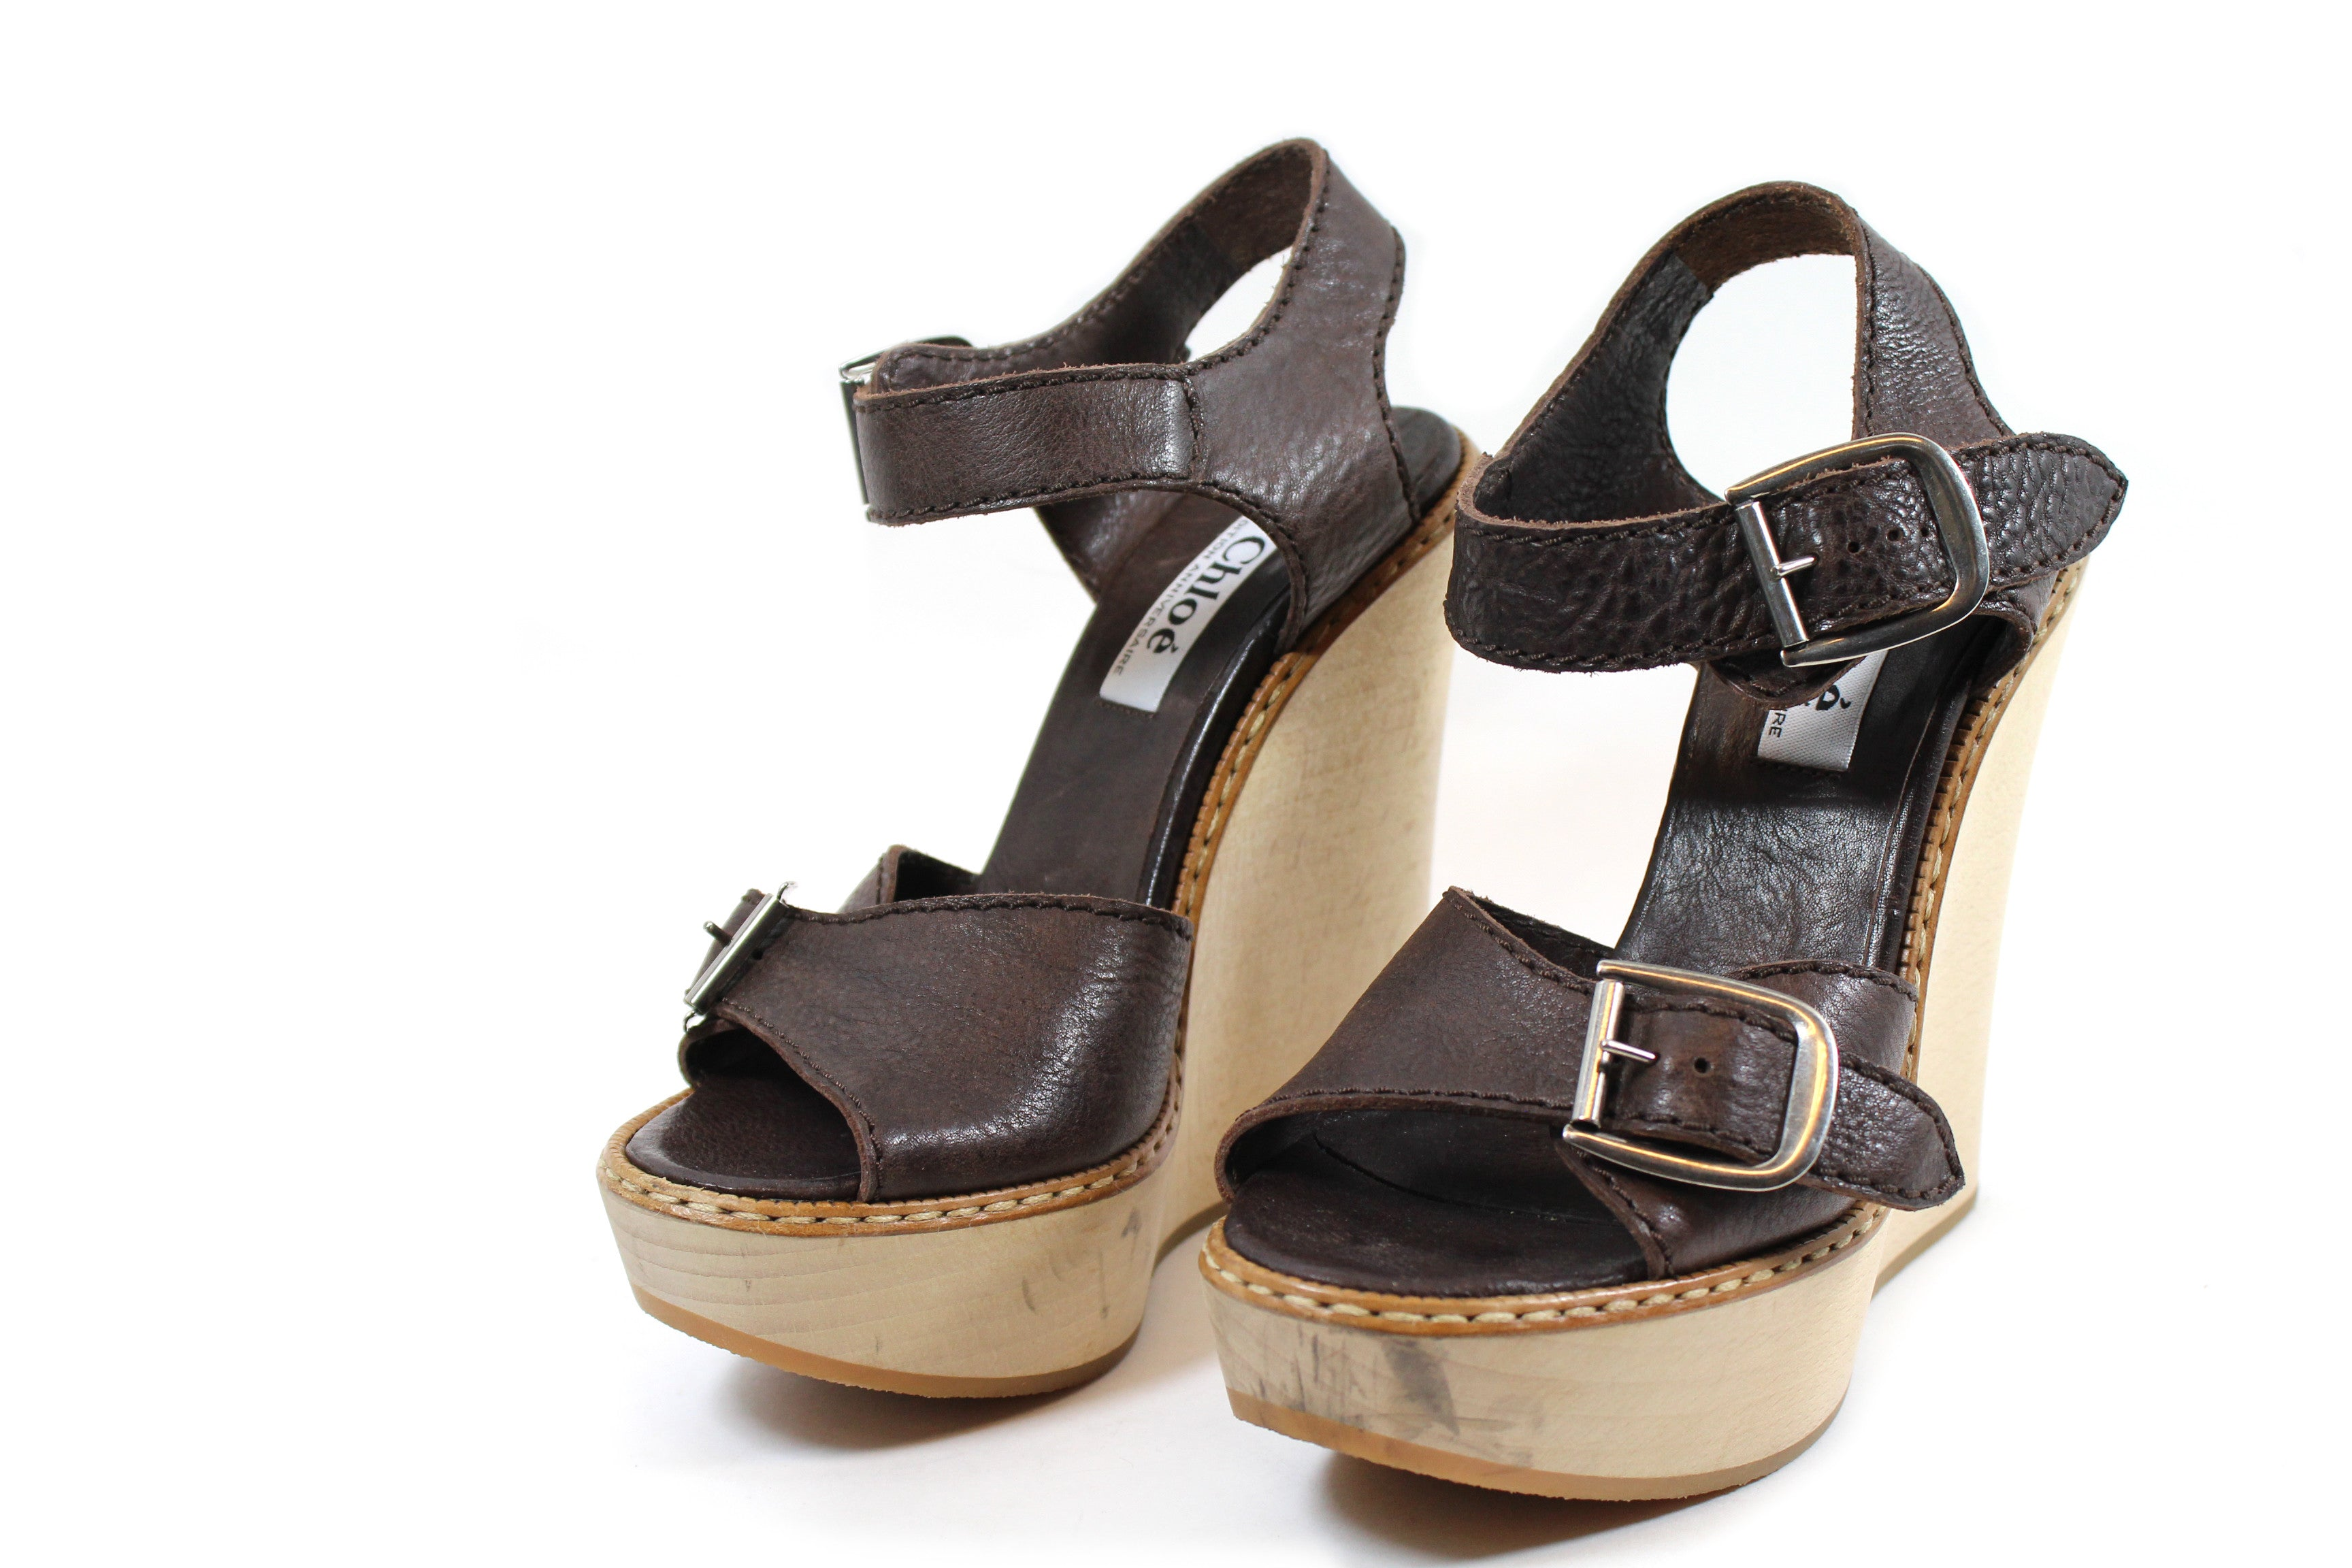 Chloé Patent Leather Buckle Wedge Sandals discount from china free shipping excellent real for sale outlet latest collections best store to get heqAQDA0pu